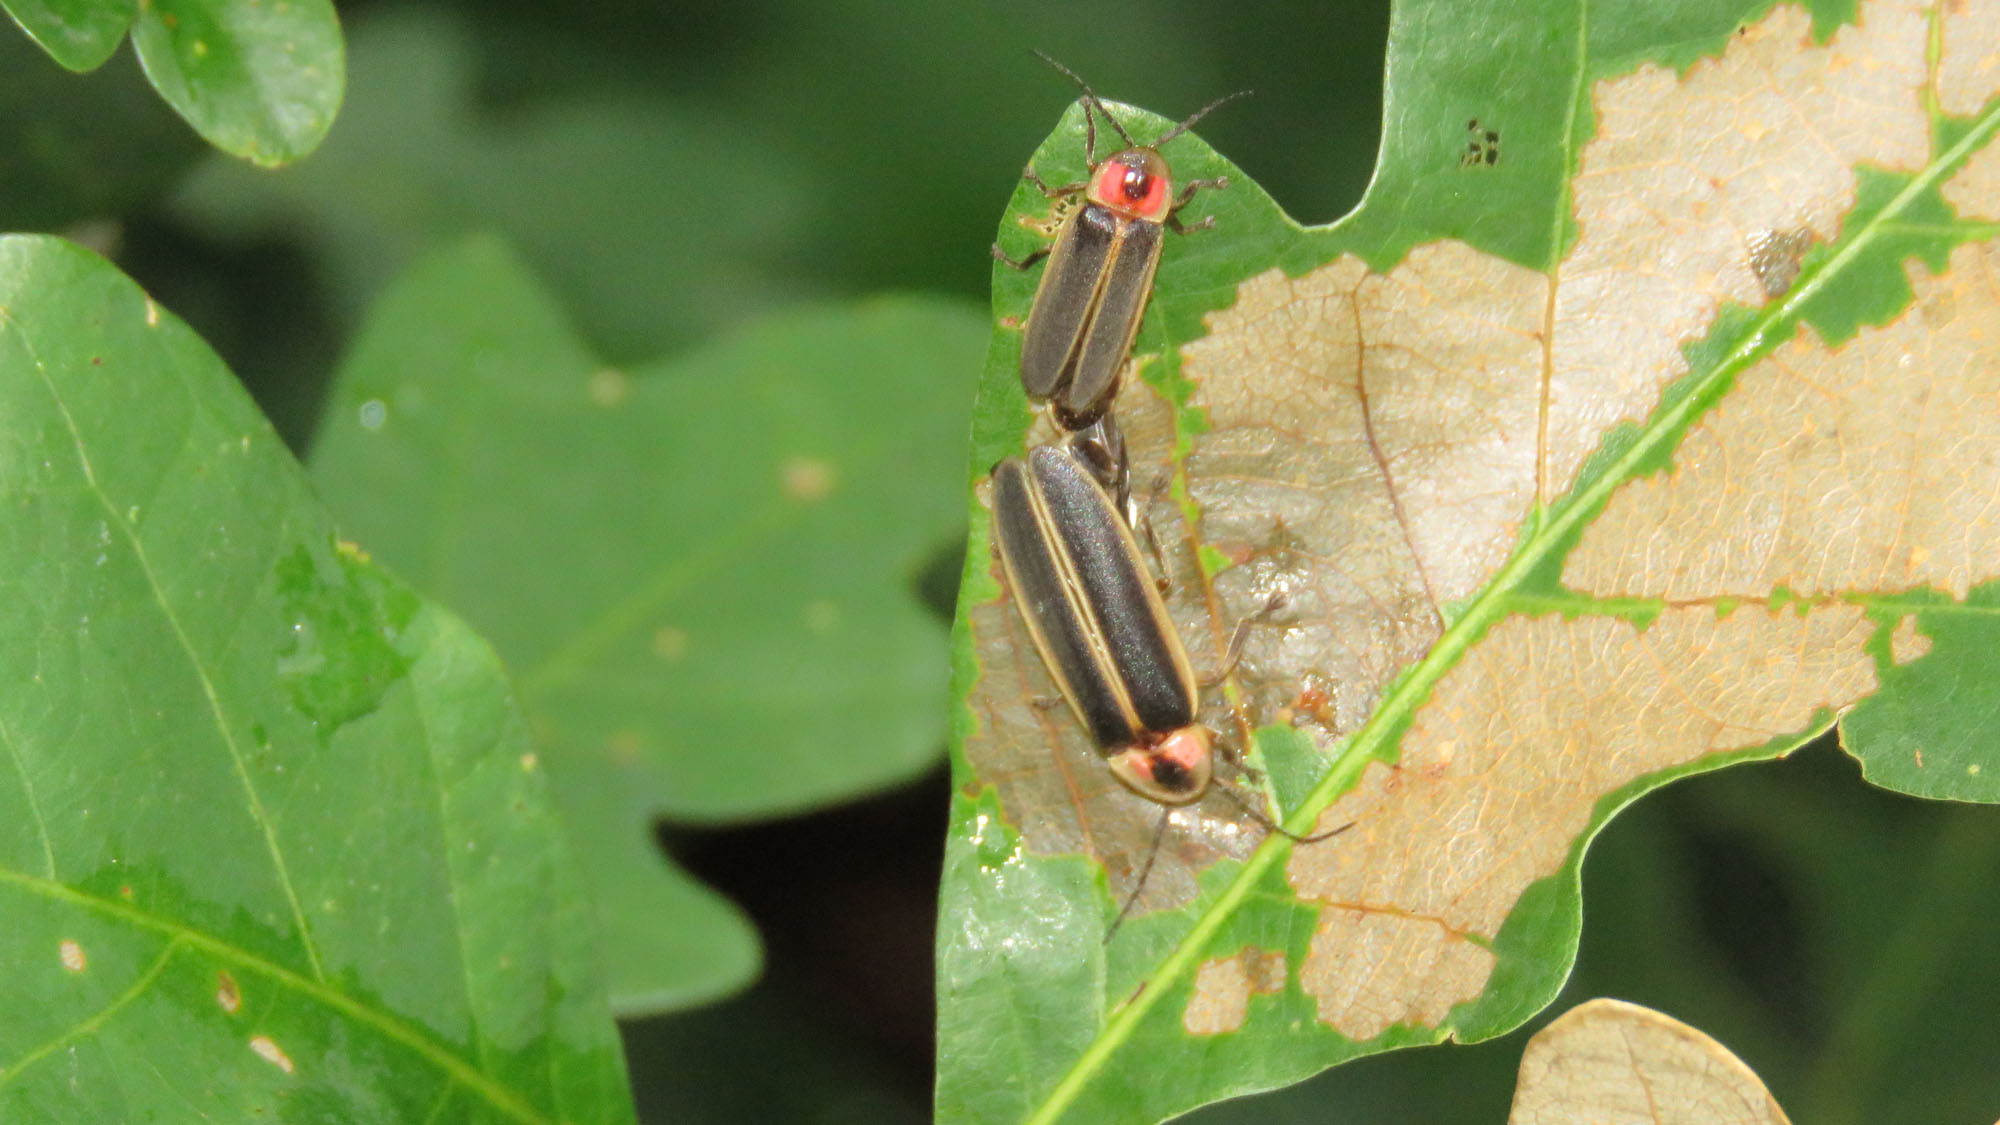 Two fireflies preapring to mate while on a tree leaf during the day.